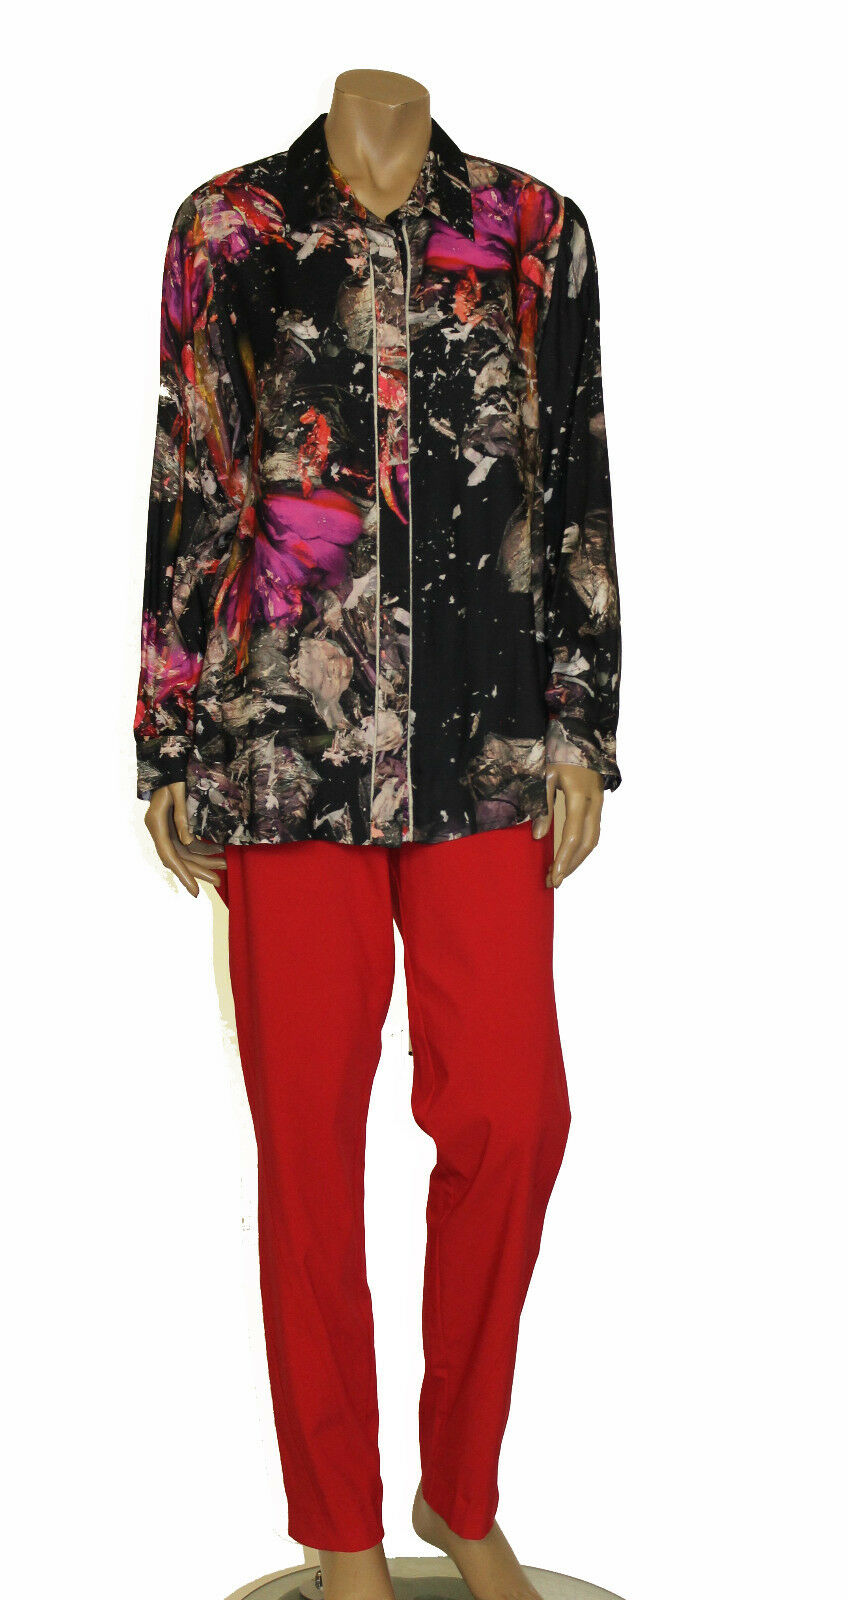 CHALOU EURO PLUS BUTTONED PRINTED LONG SLEEVES SHIRT BLOUSE MULTI COLOR 14